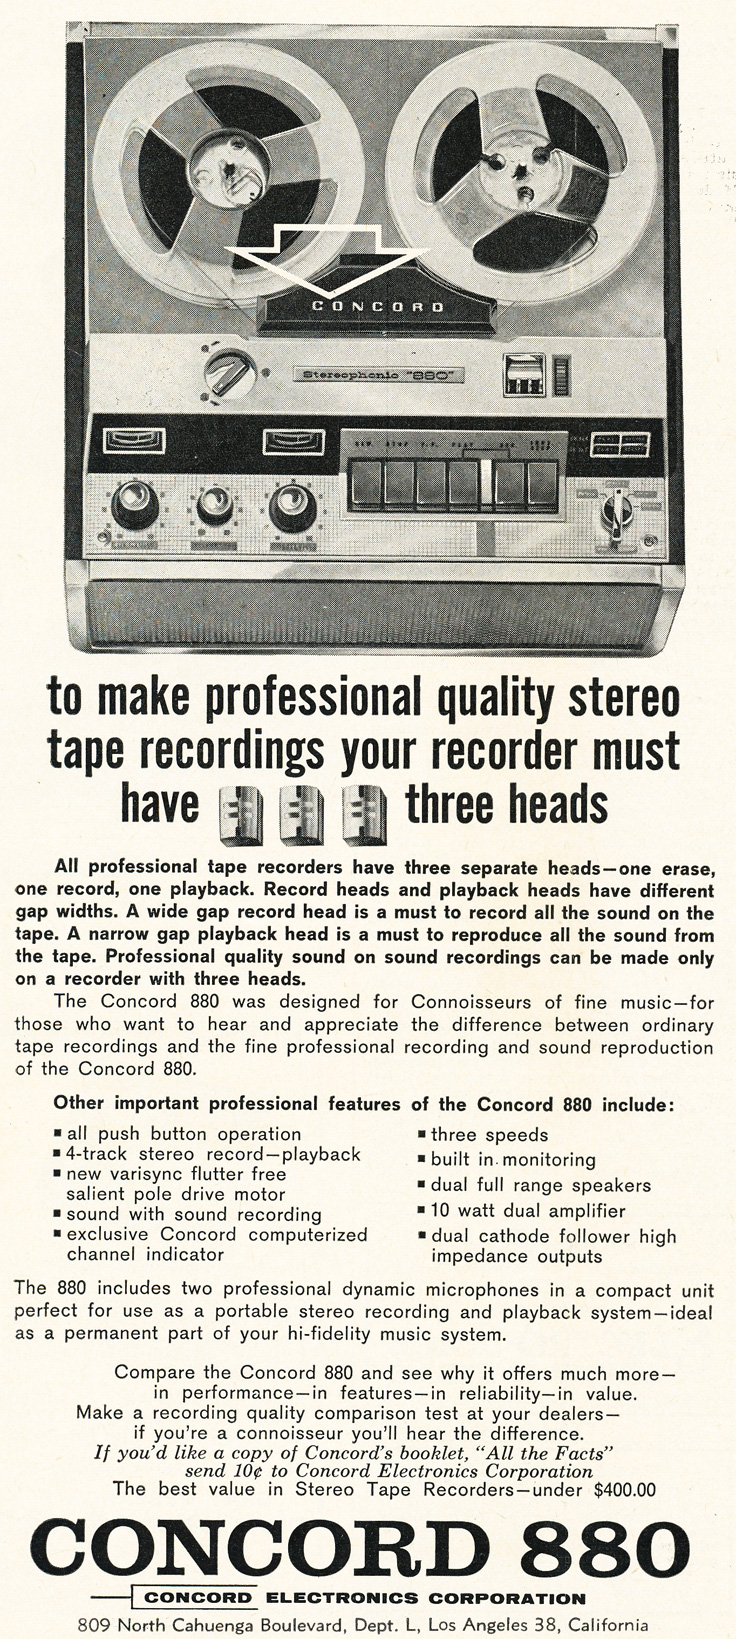 1963 ad for the Concord 880 reel to reel tape recorder in Reel2ReelTexas.com's vintage recording collection